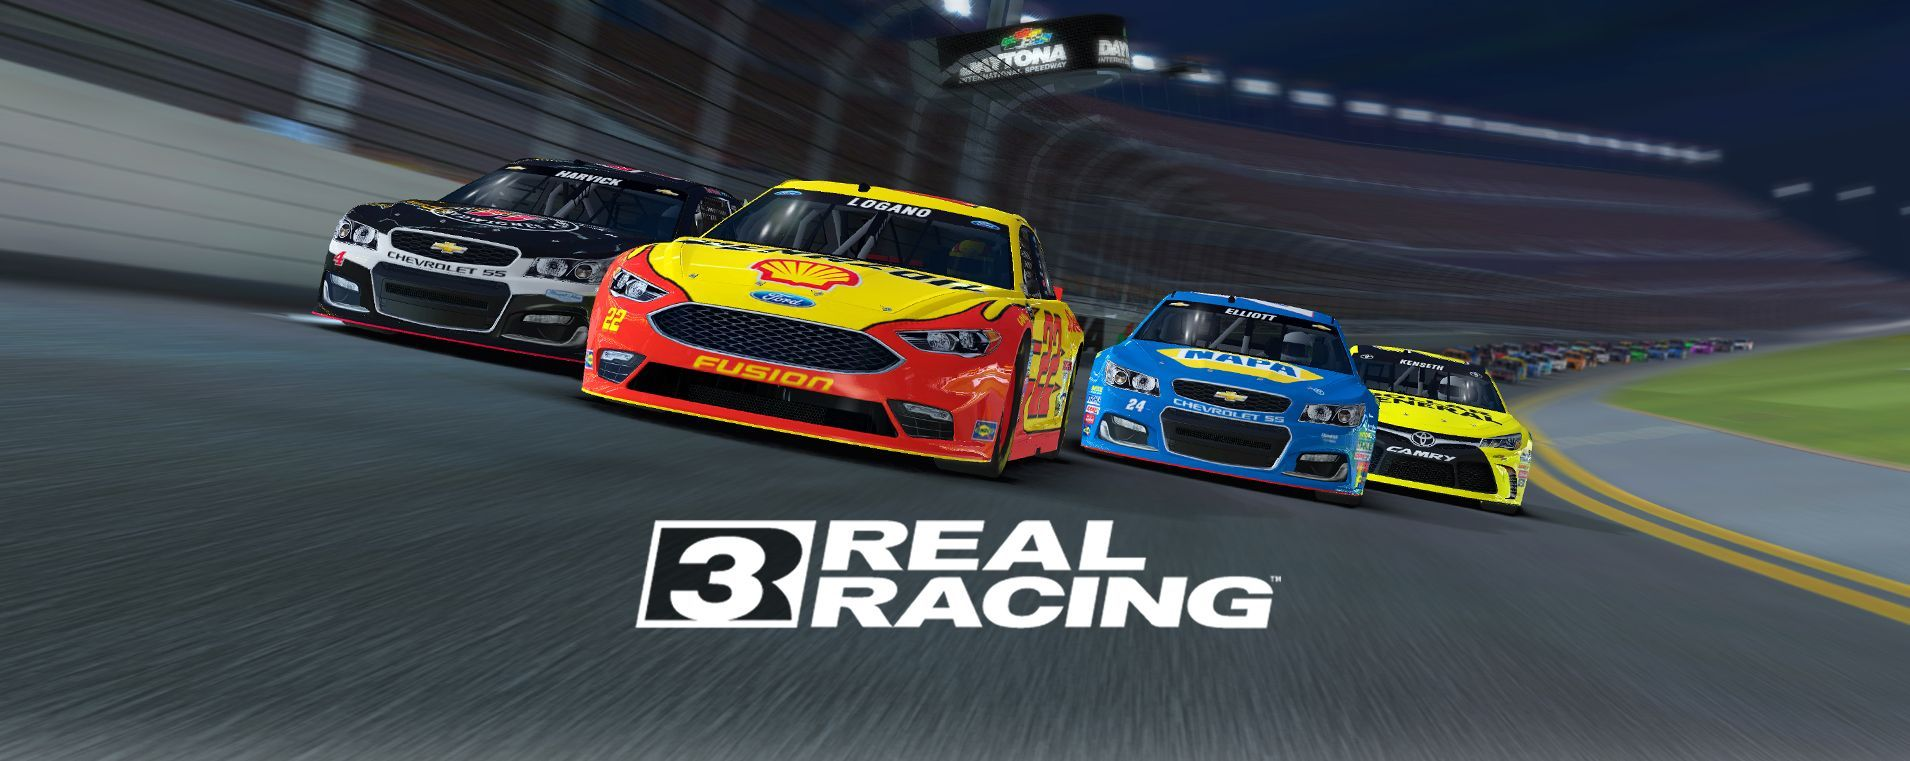 Real Racing 3 est maintenant compatible avec Android TV